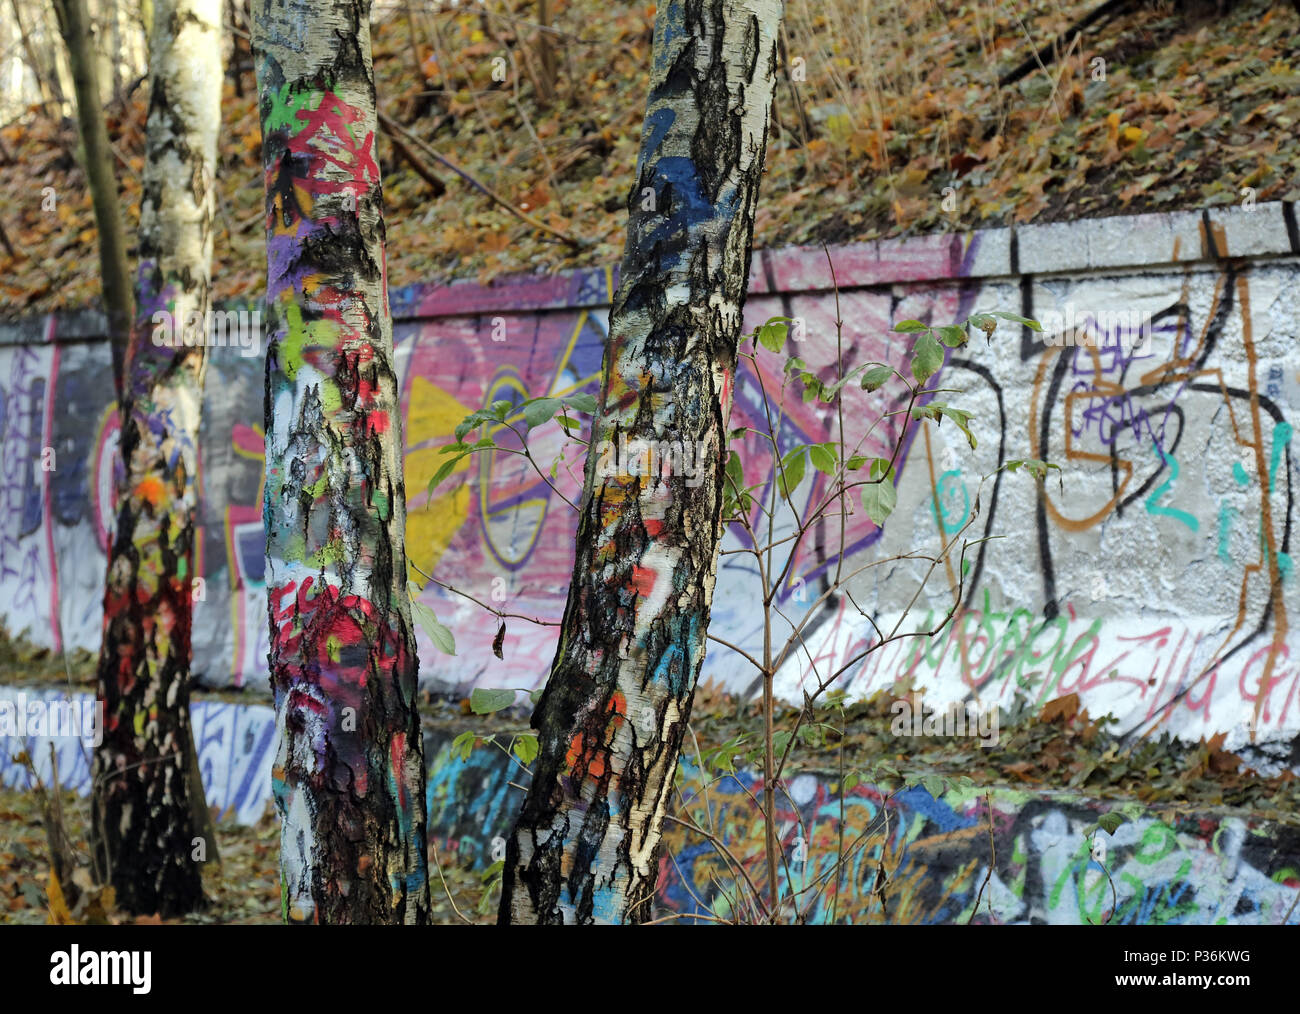 Berlin, Germany, colorfully painted birches in the Natur-Park Suedgelaende - Stock Image